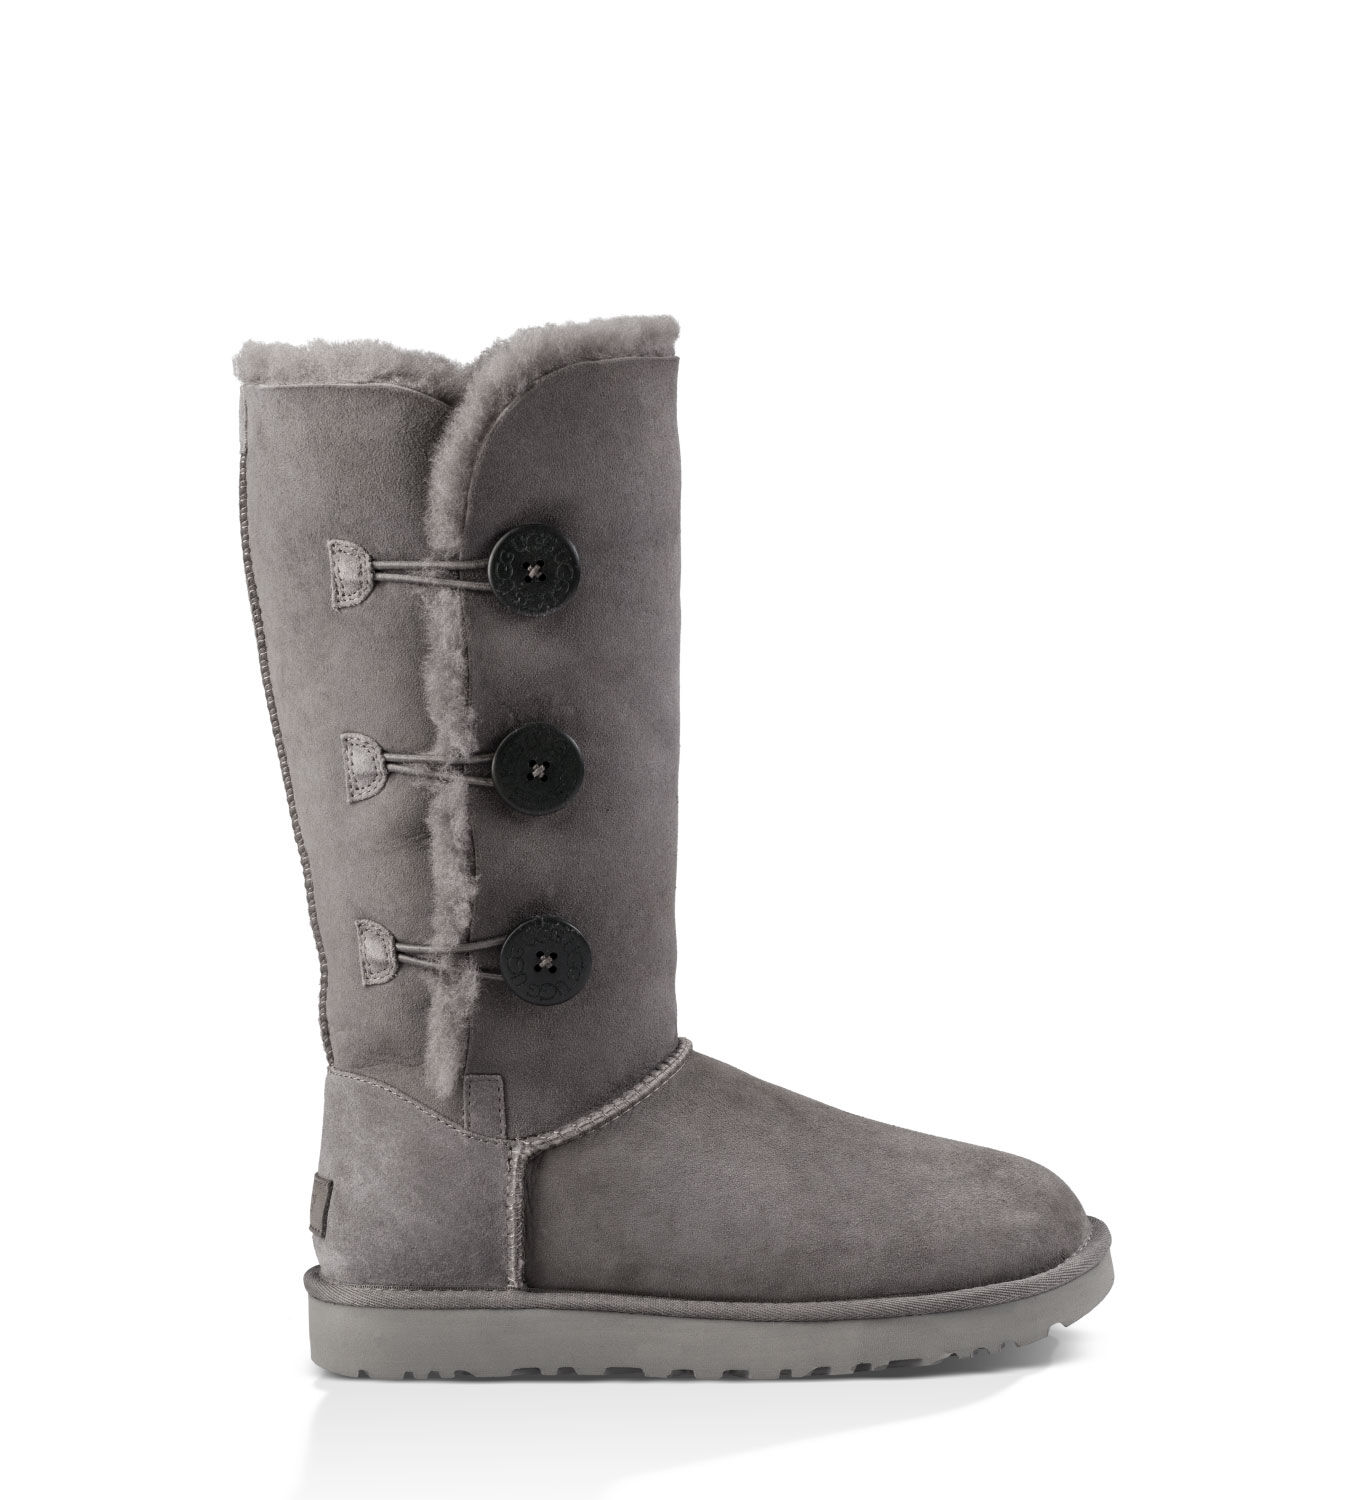 54fda332cb0 coupon code for ugg 1873 bailey button triplet boots quest cc639 f5ddf